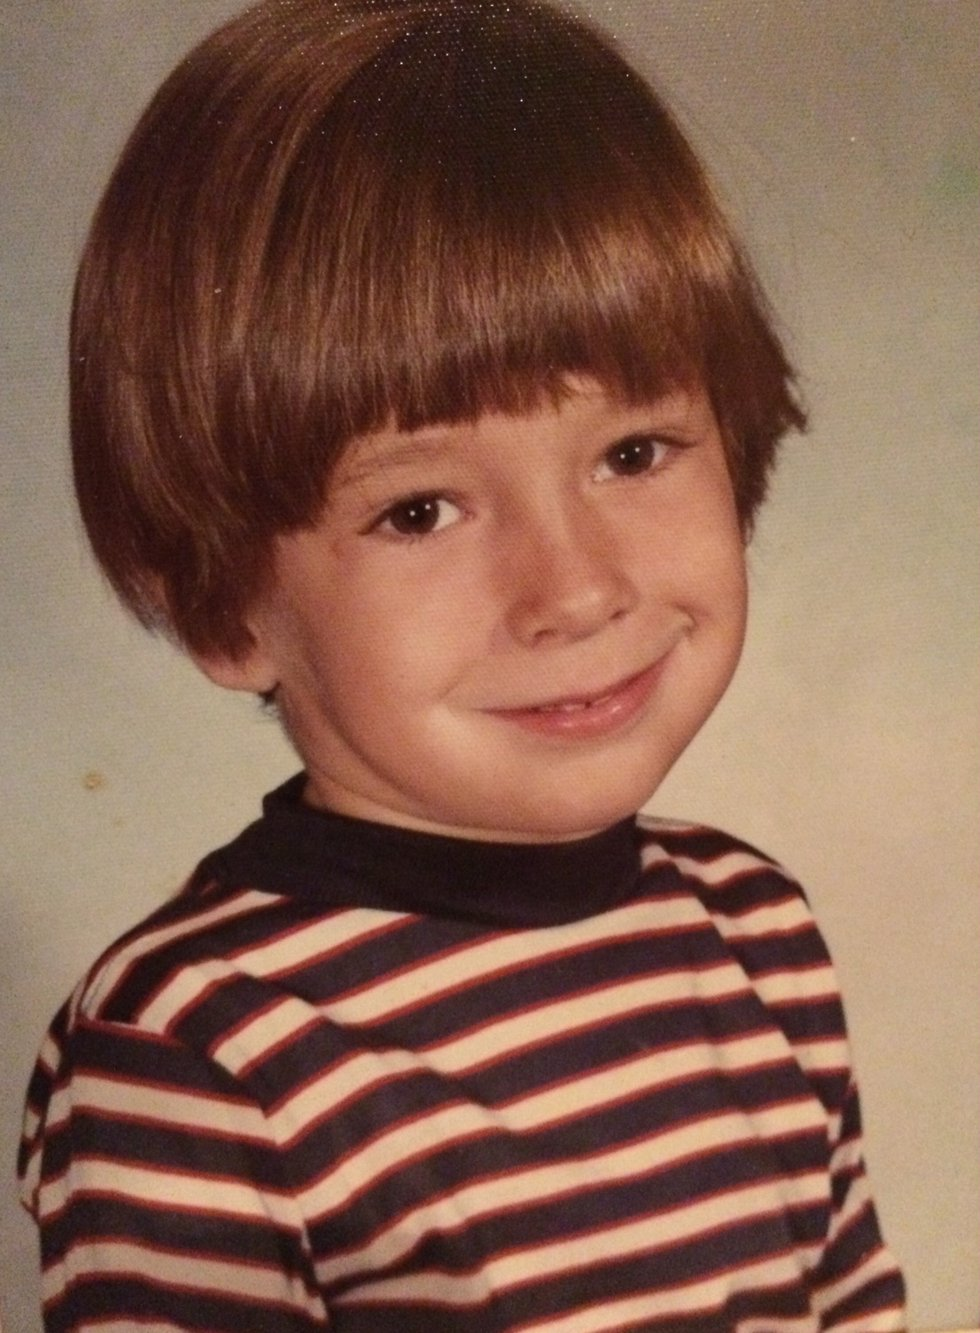 Jamie Boll rocking the hair and stripes!